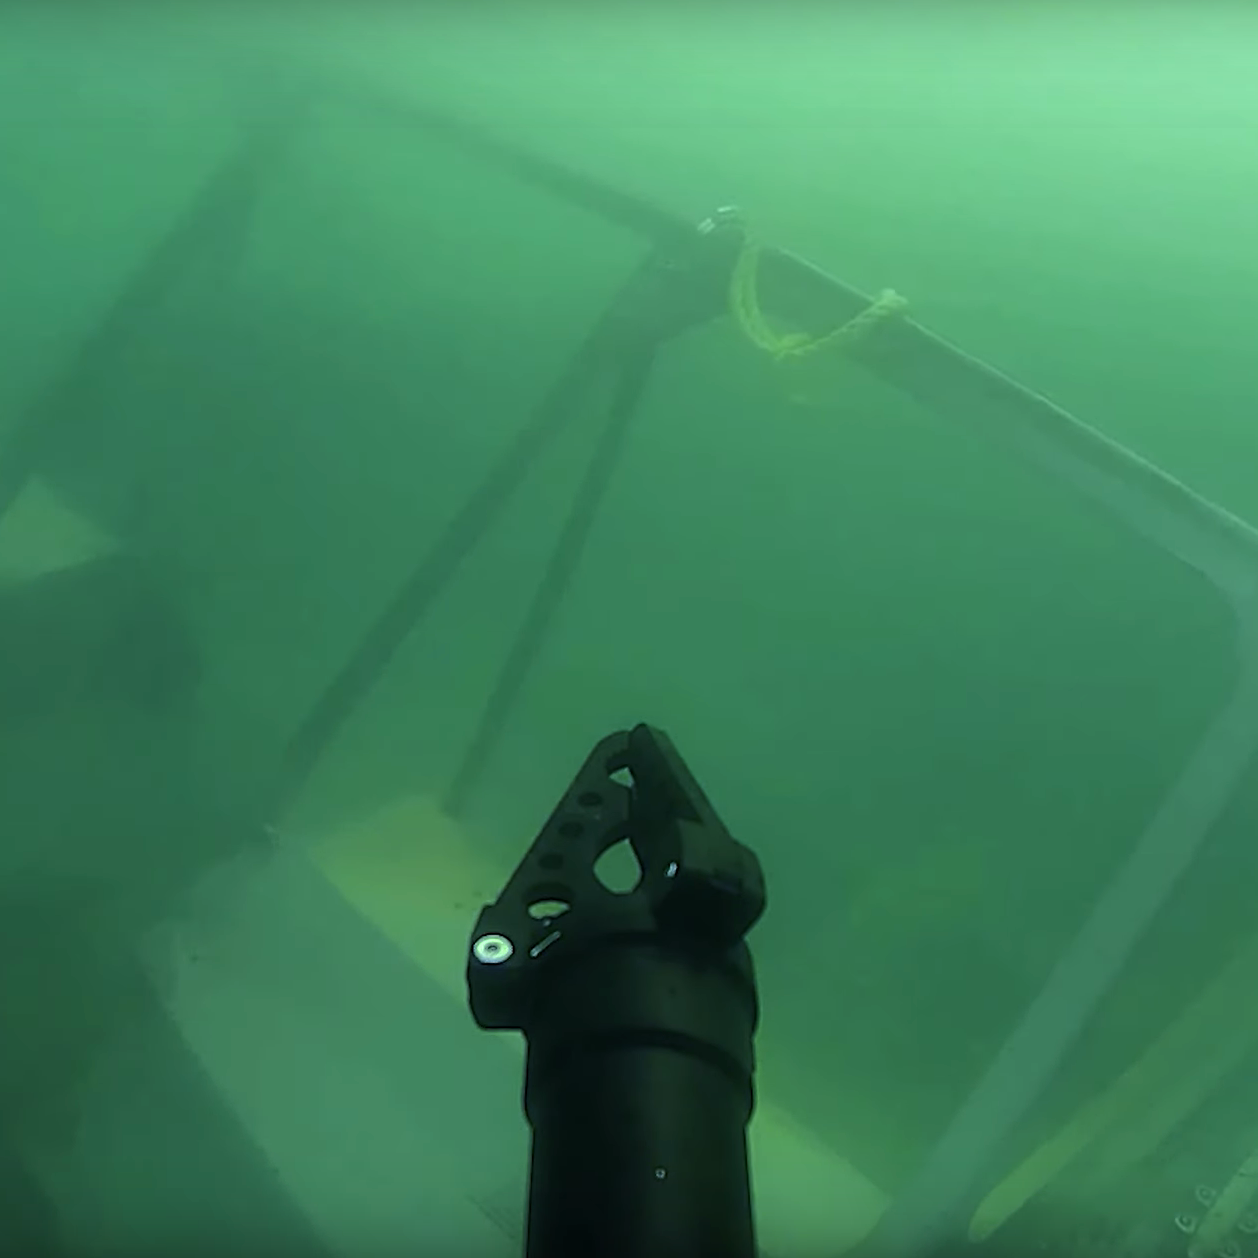 SRV-8 remotely operated underwater vehicle underwater view with grabber near shipwreck